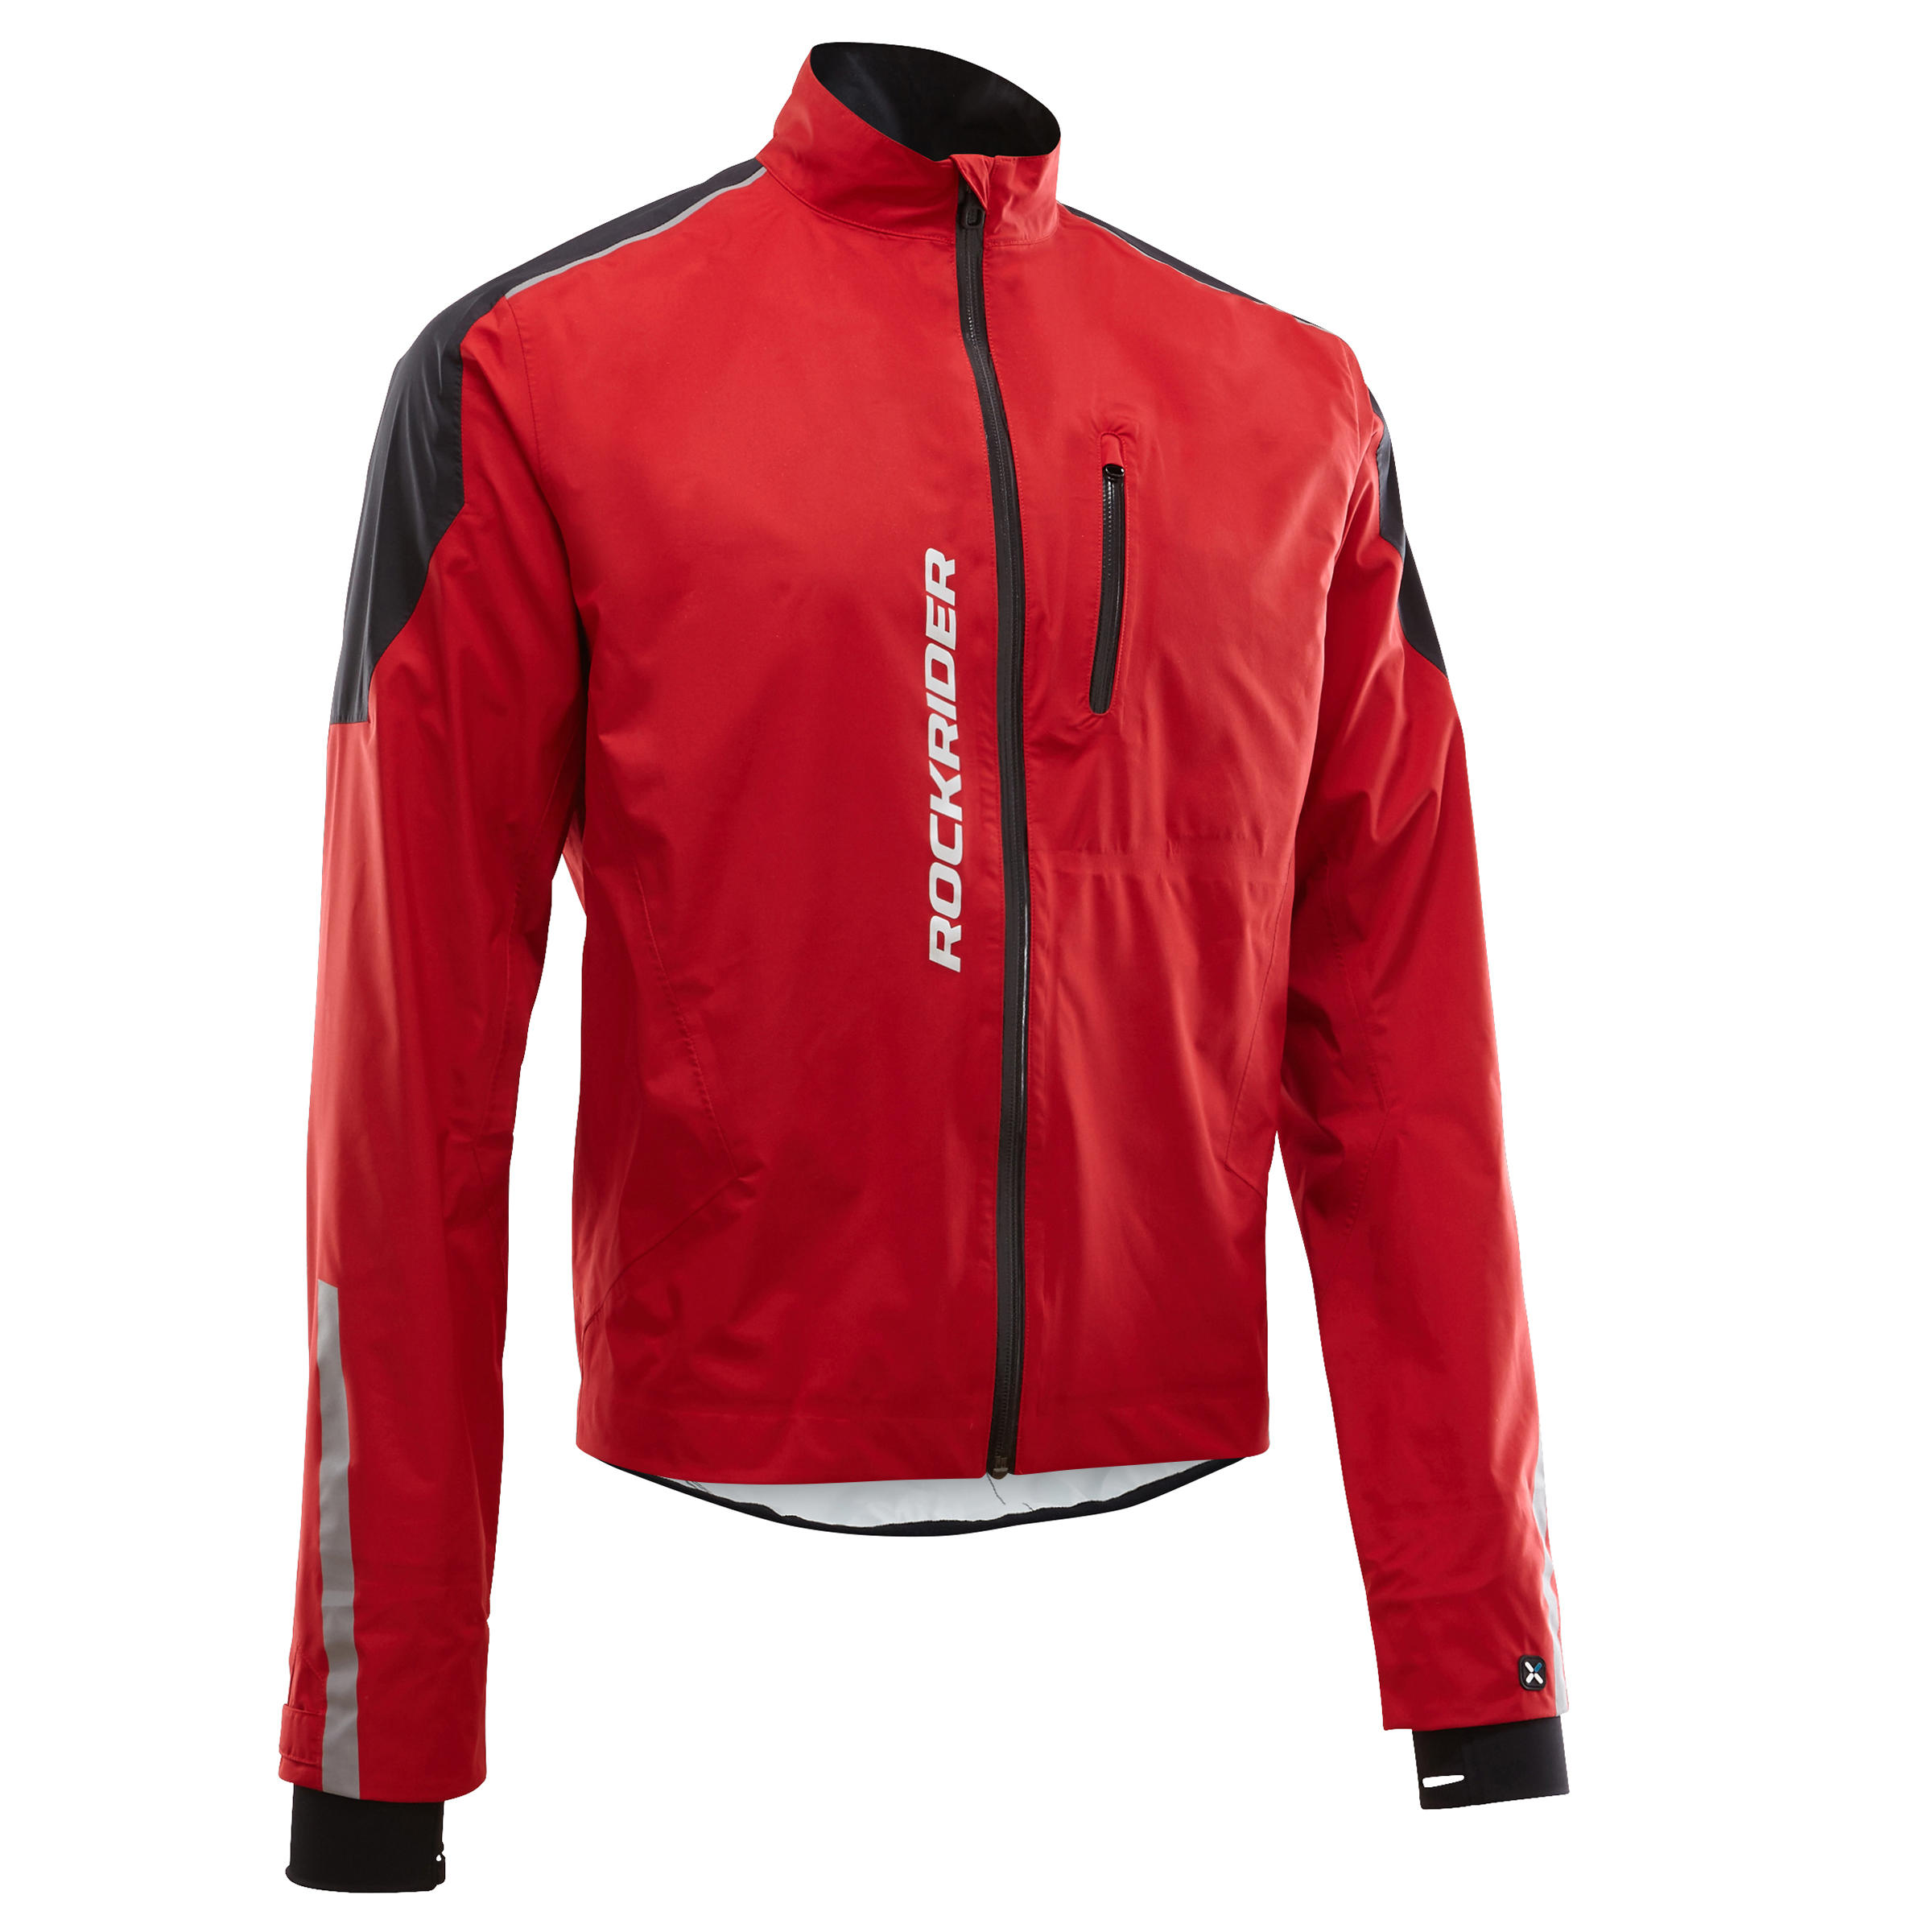 ST 900 Mountain Bike Rain Jacket - Red